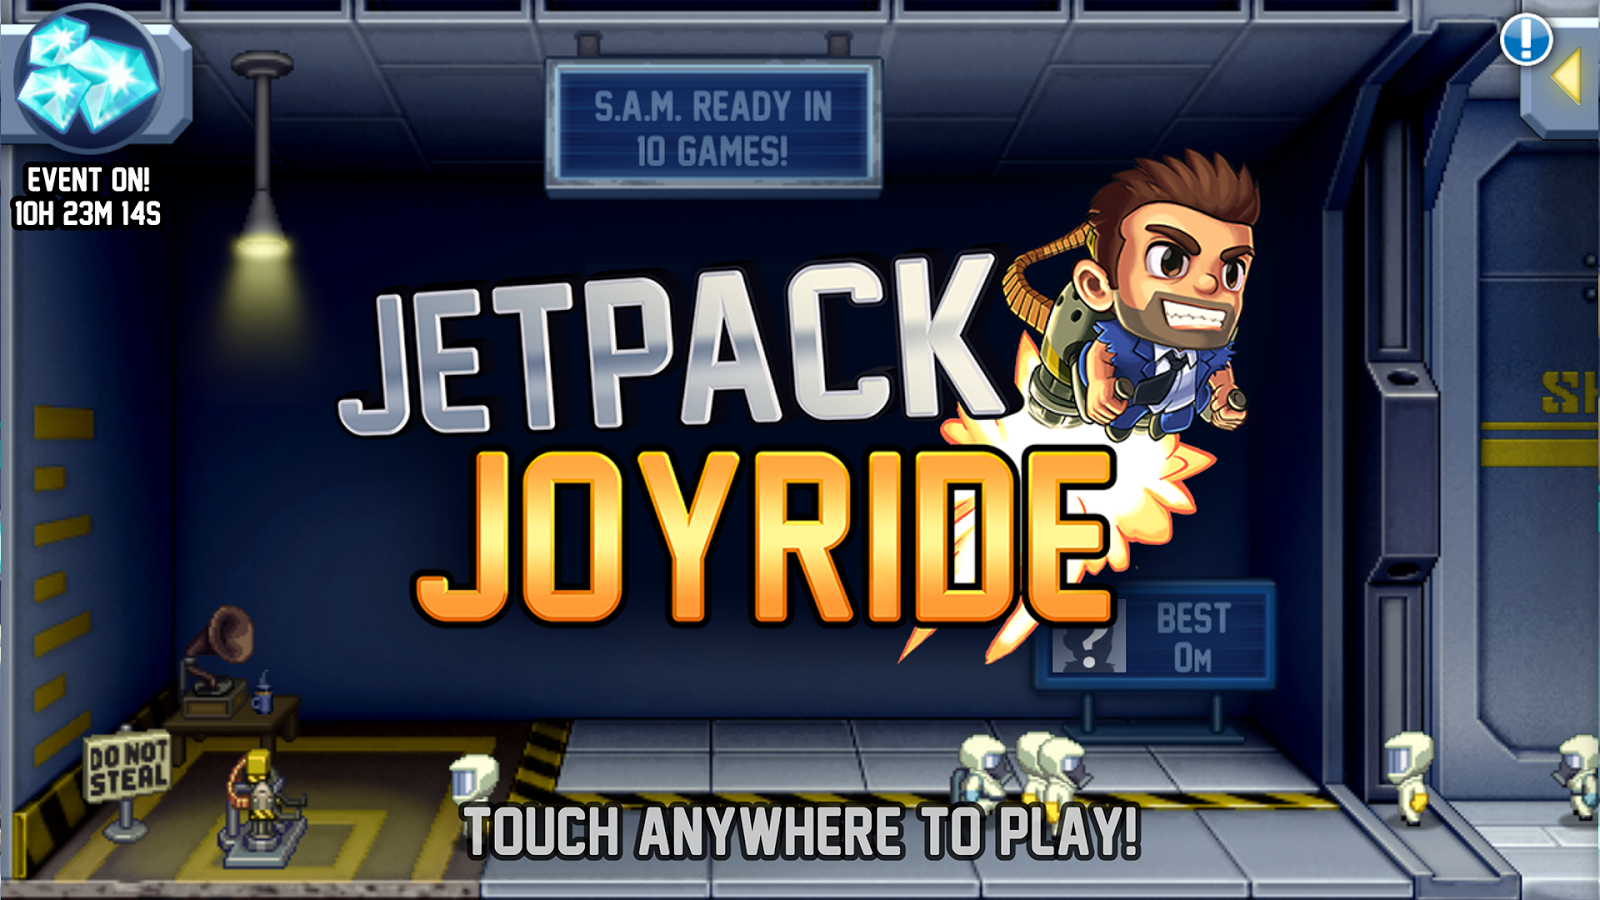 Jetpack Joyride Hacked MOD Unlimitted Coins